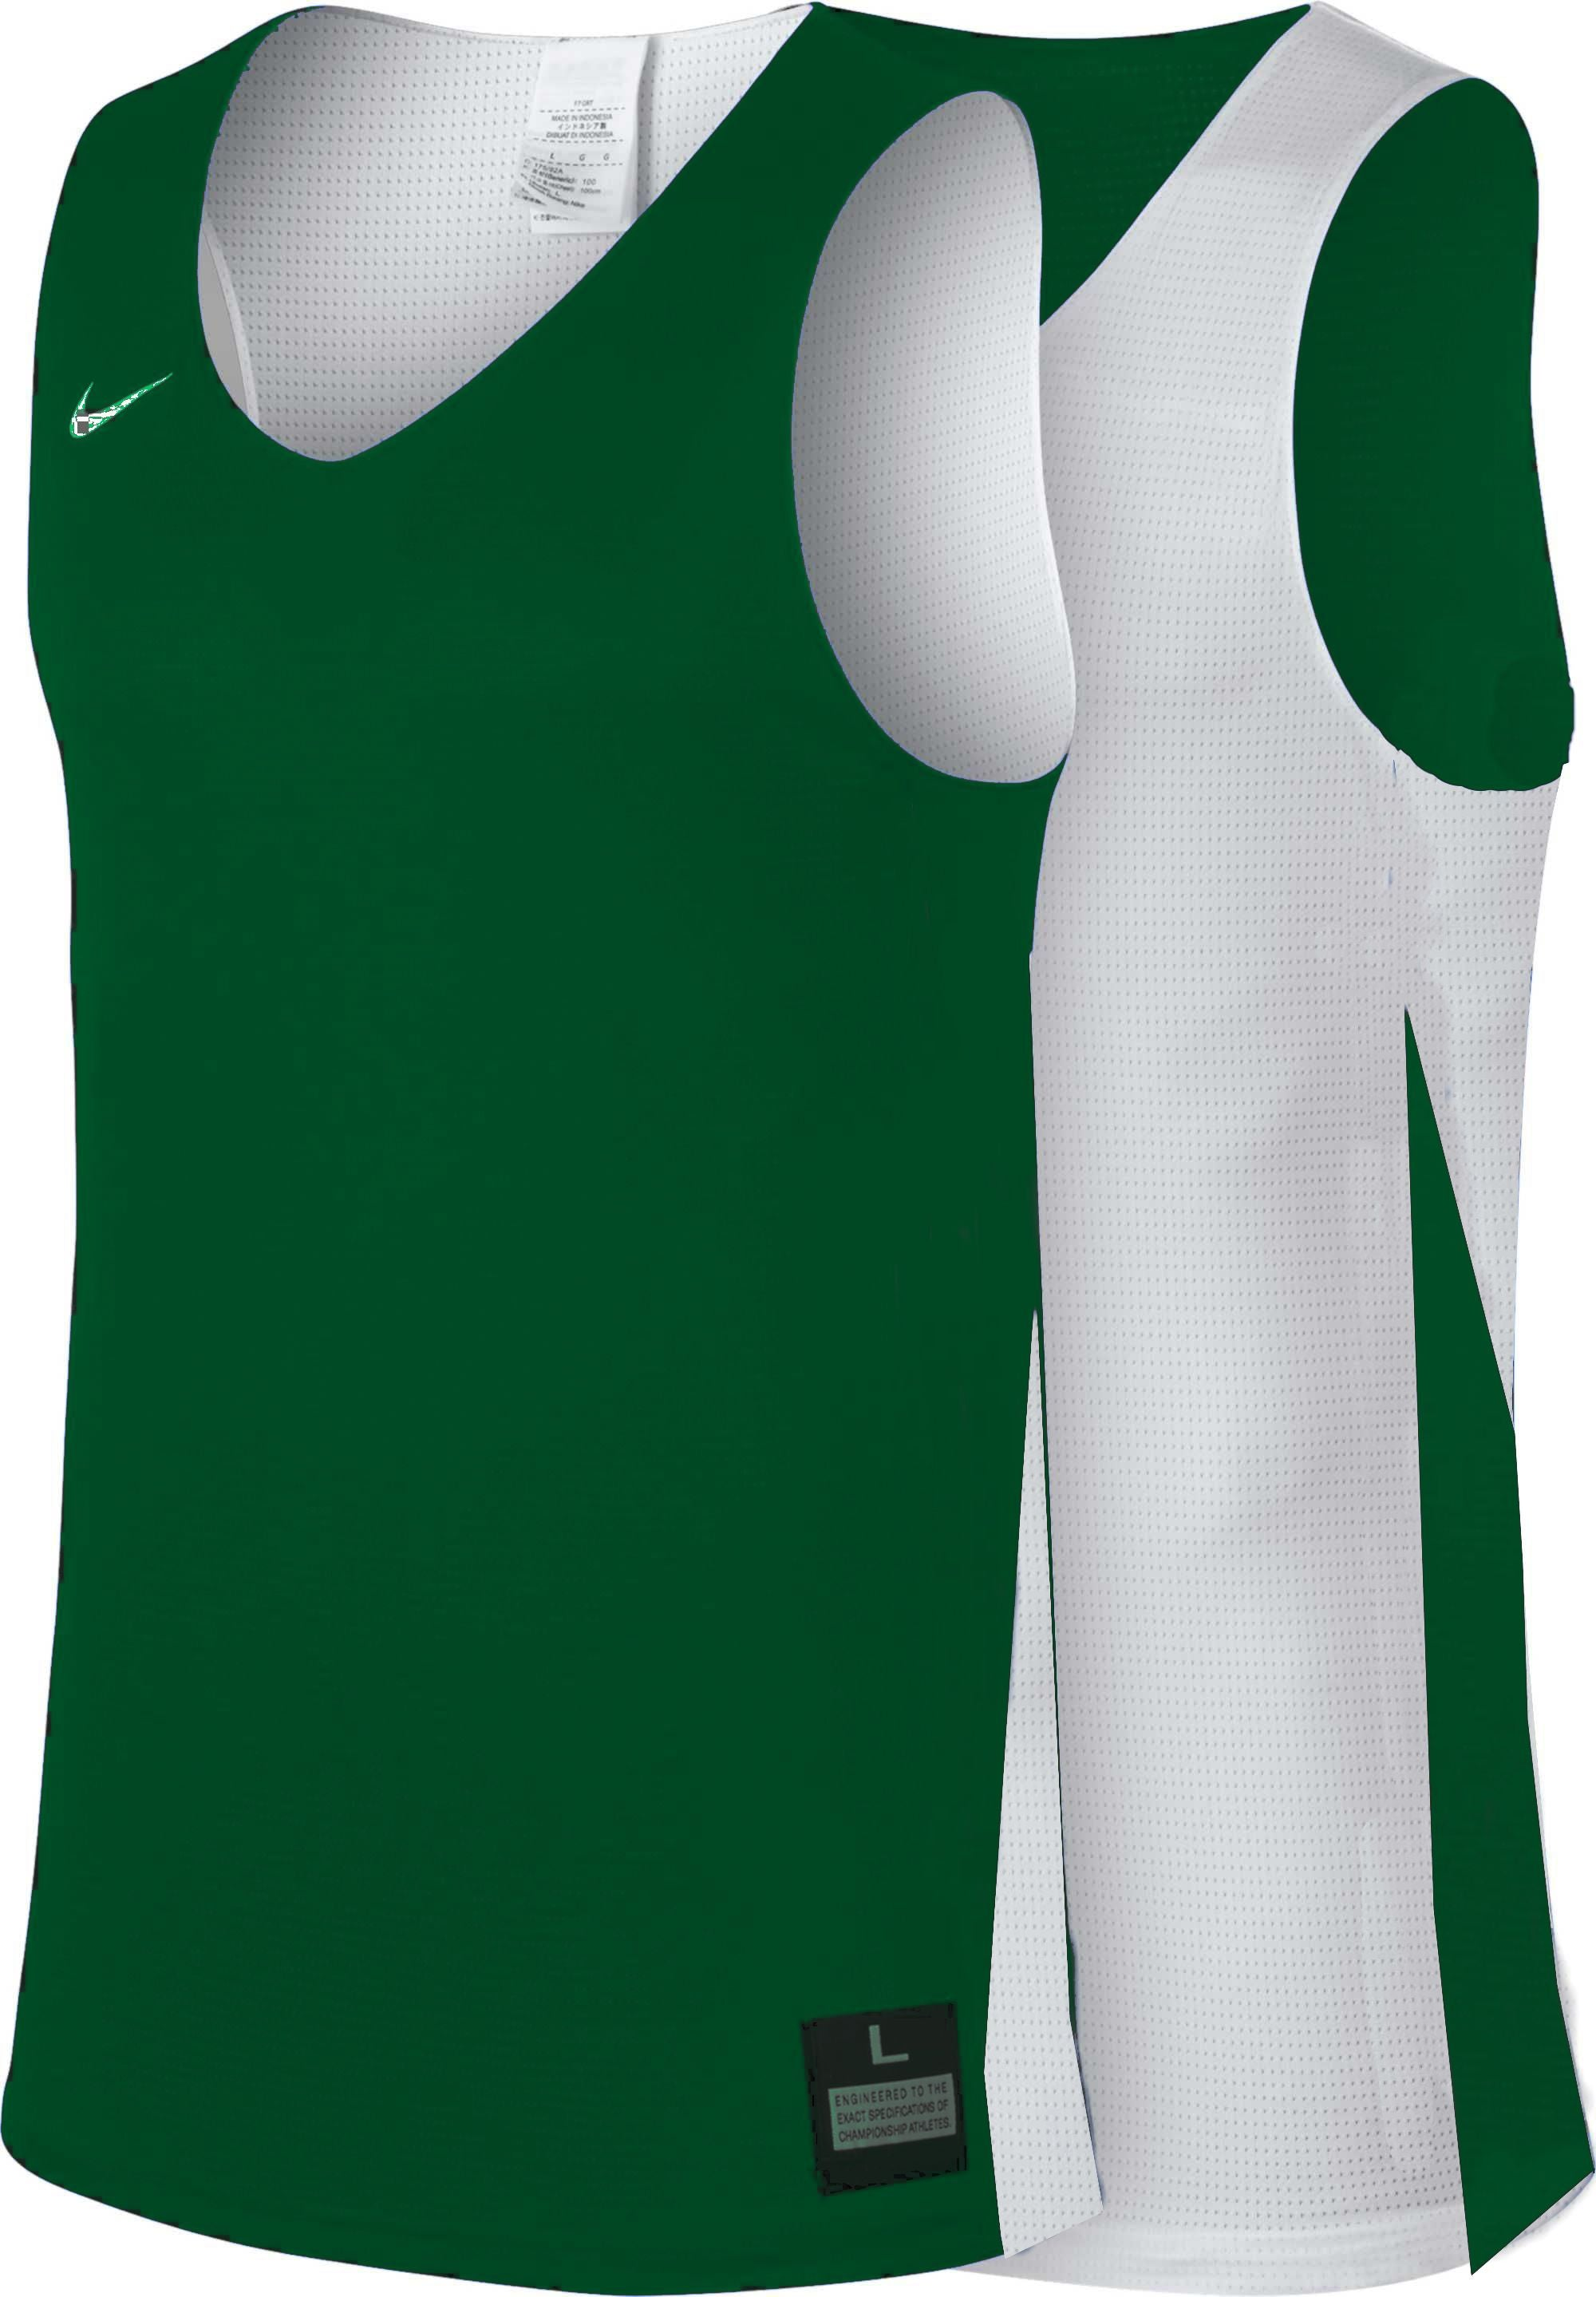 Teamwear - Nike Women's Team Basketball Reversible Jersey - White/Pine Green - NK-NT0213-302